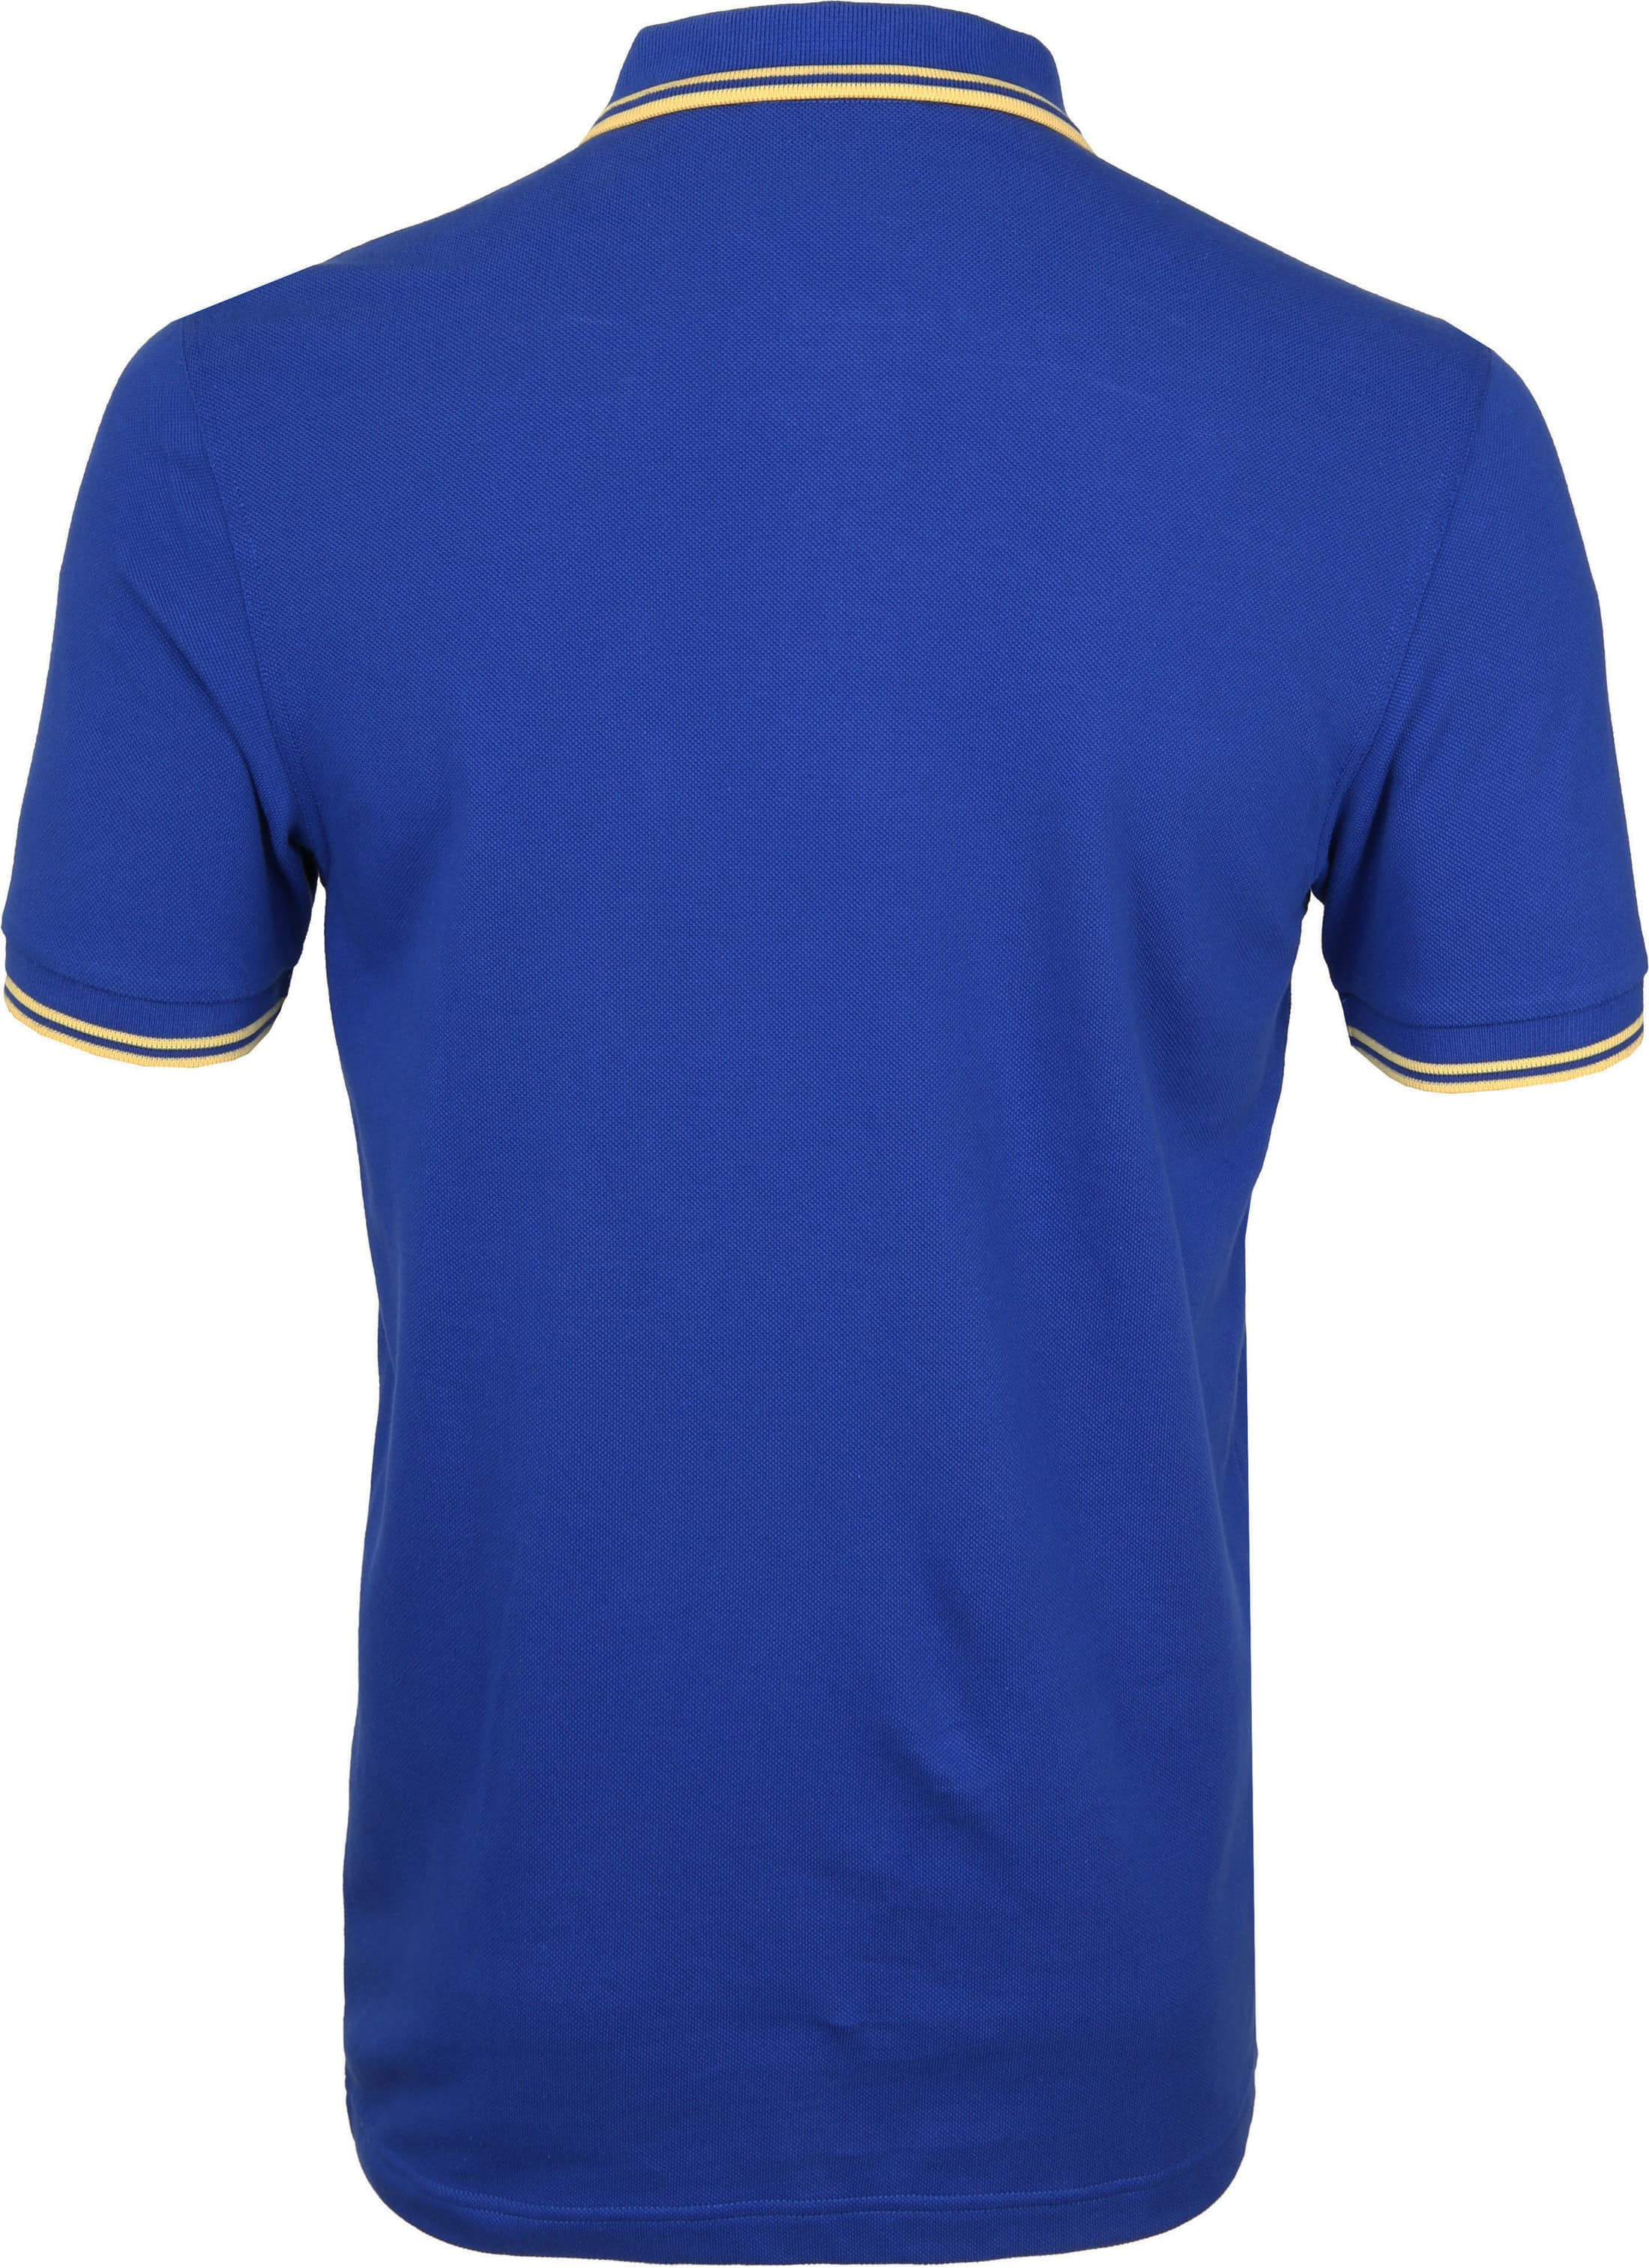 Fred Perry Poloshirt Blue G89 foto 2